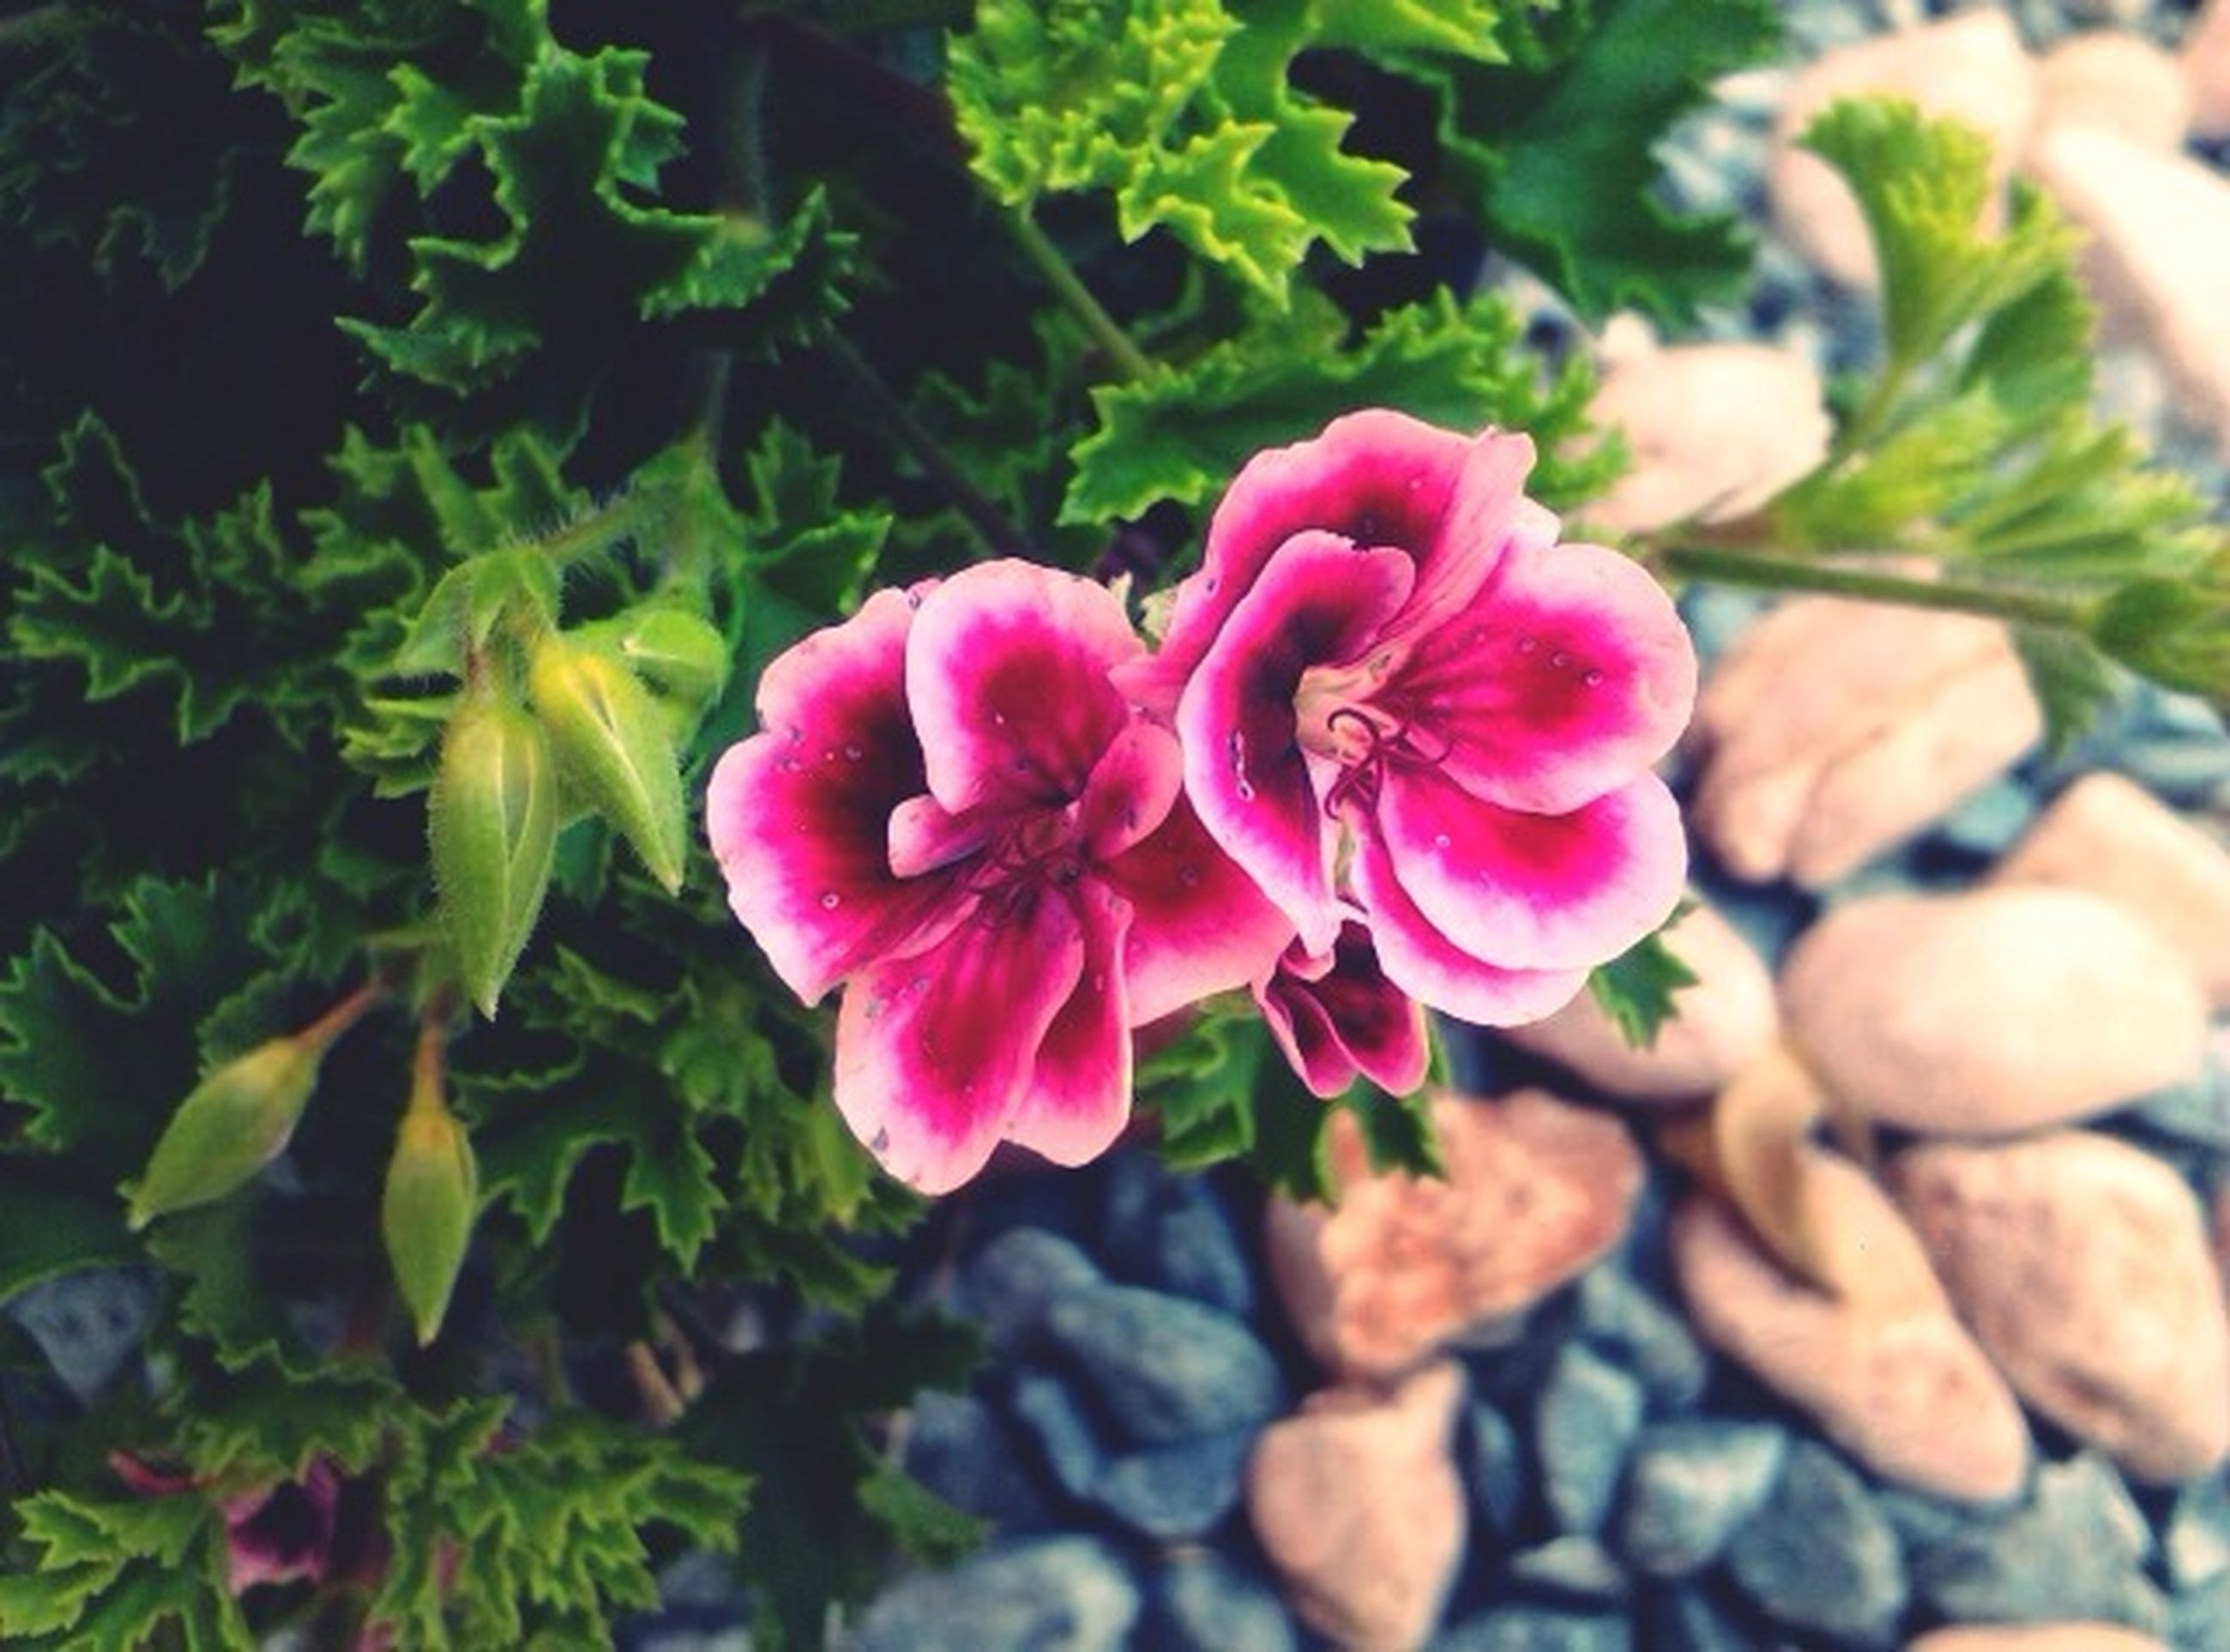 flower, freshness, growth, petal, fragility, pink color, flower head, beauty in nature, close-up, nature, plant, leaf, blooming, focus on foreground, in bloom, high angle view, single flower, outdoors, day, pink